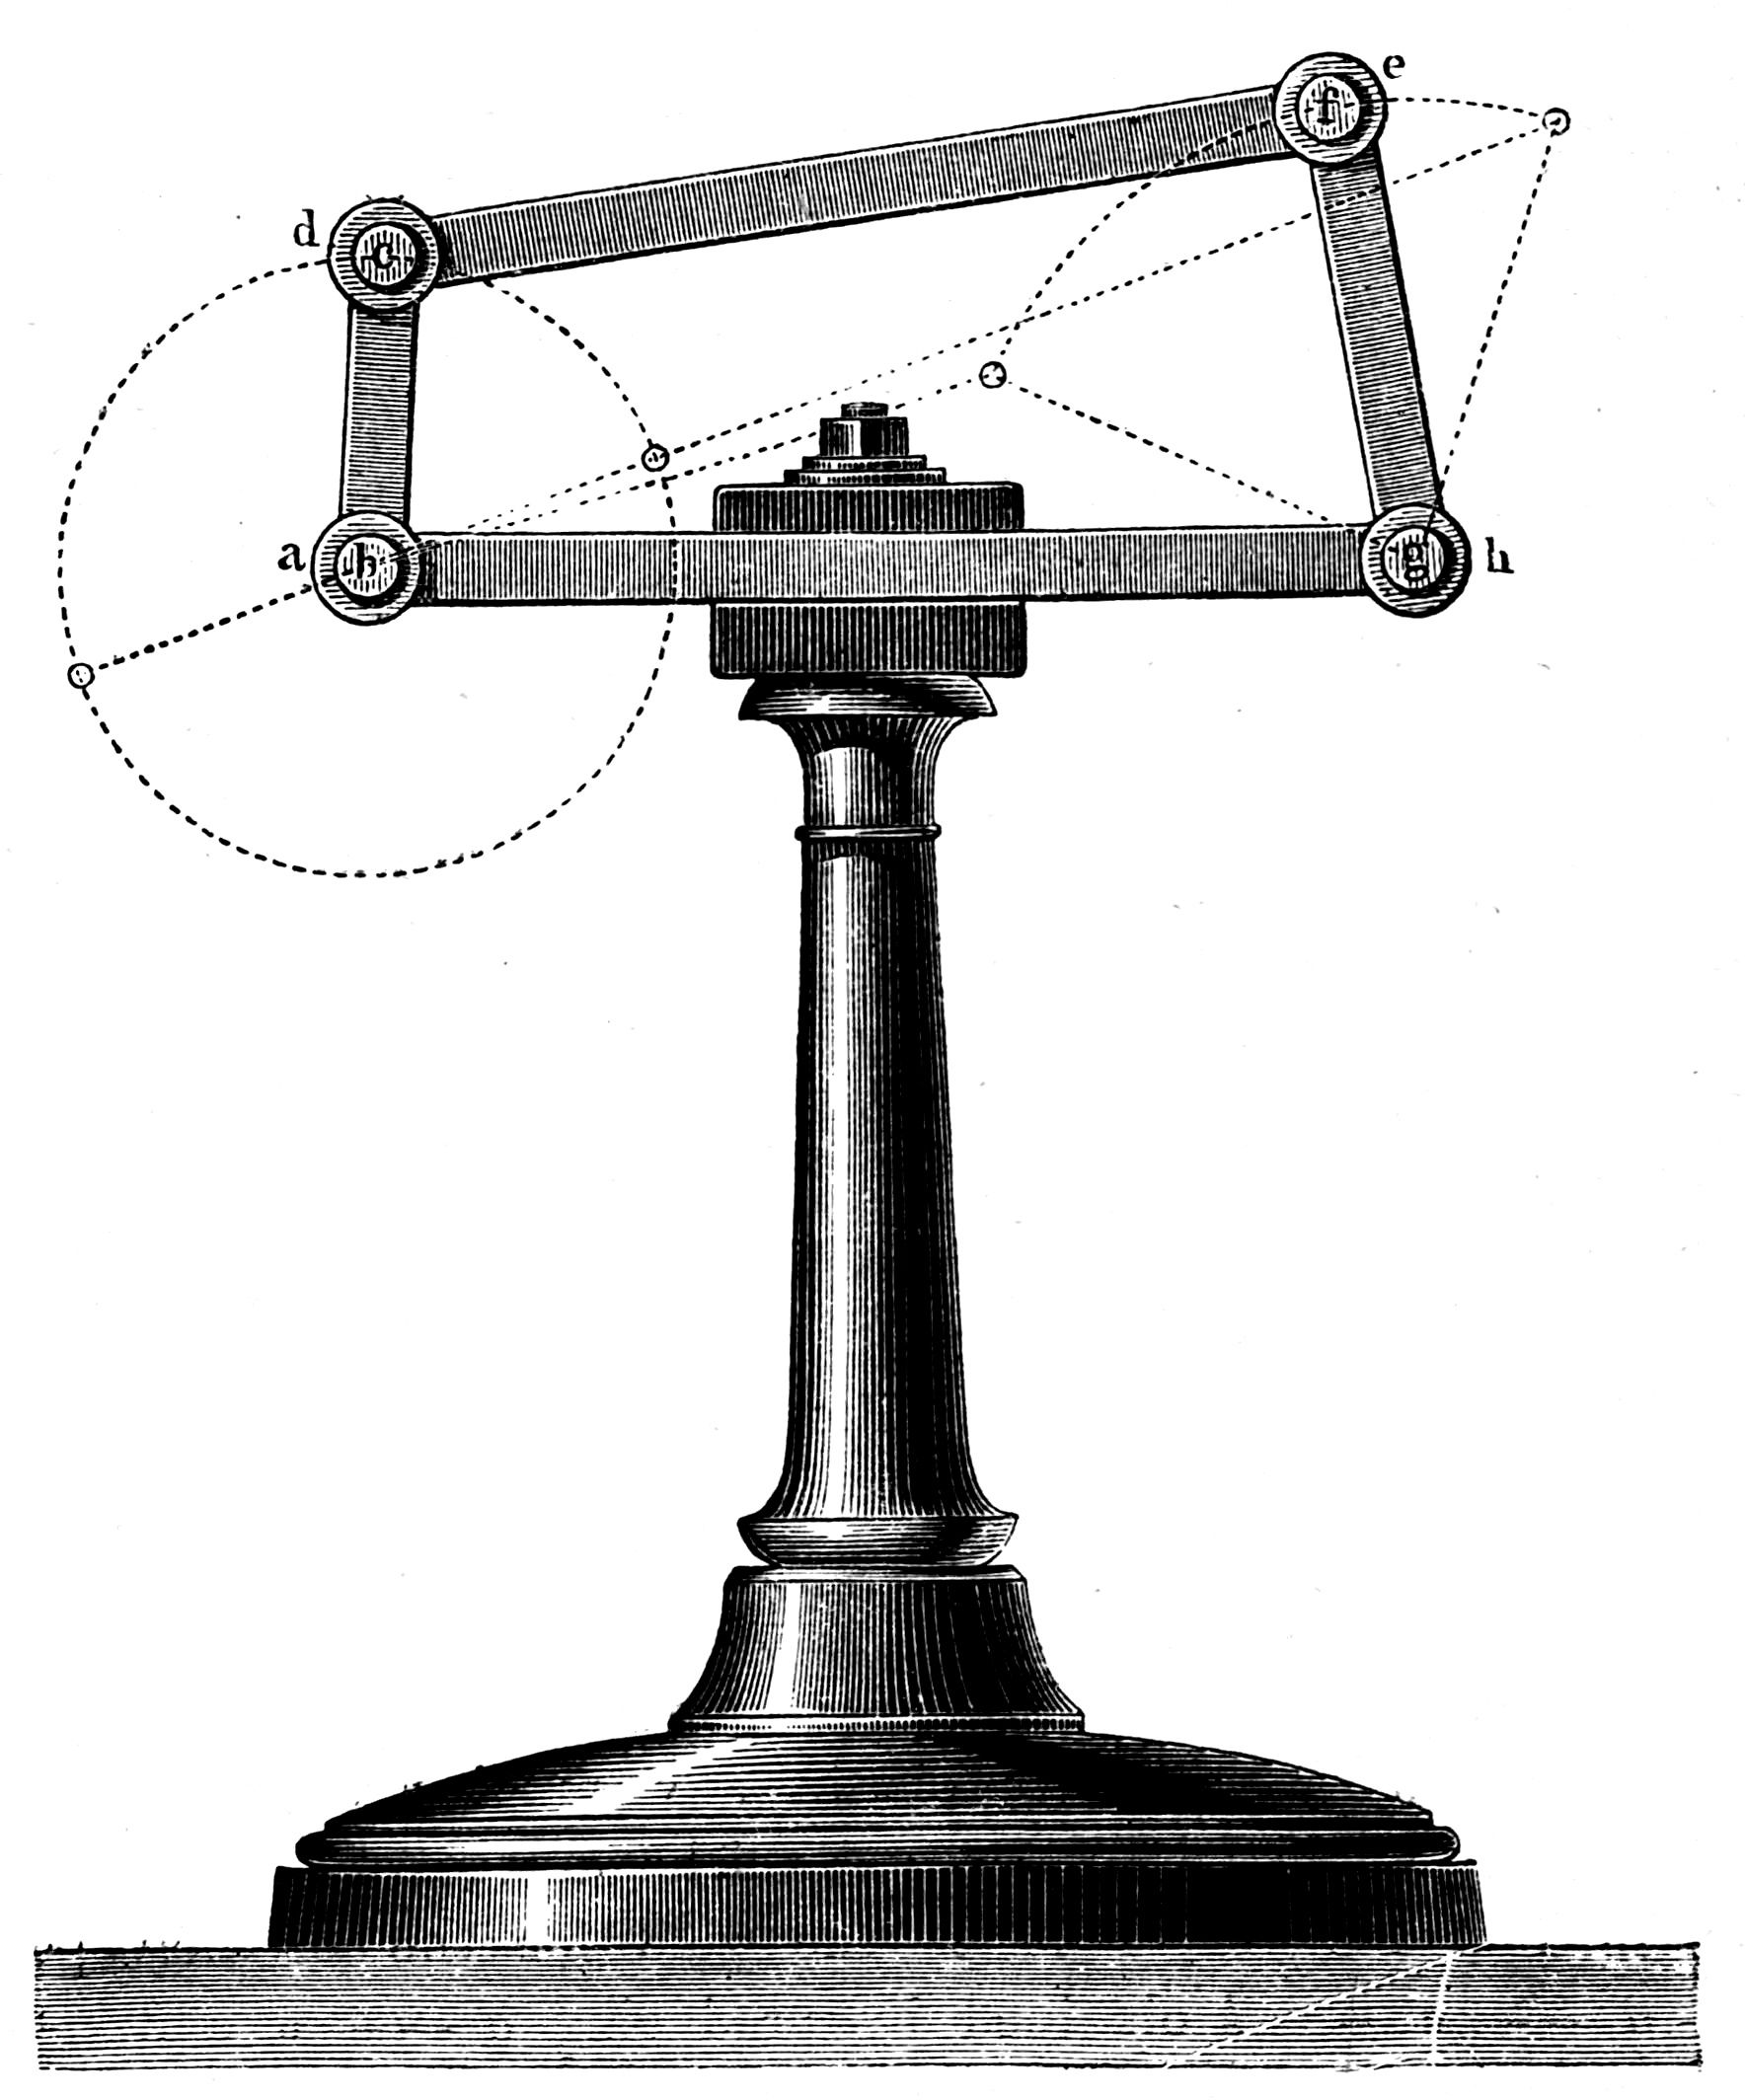 Figure 21. Illustration of a four-bar linkage from